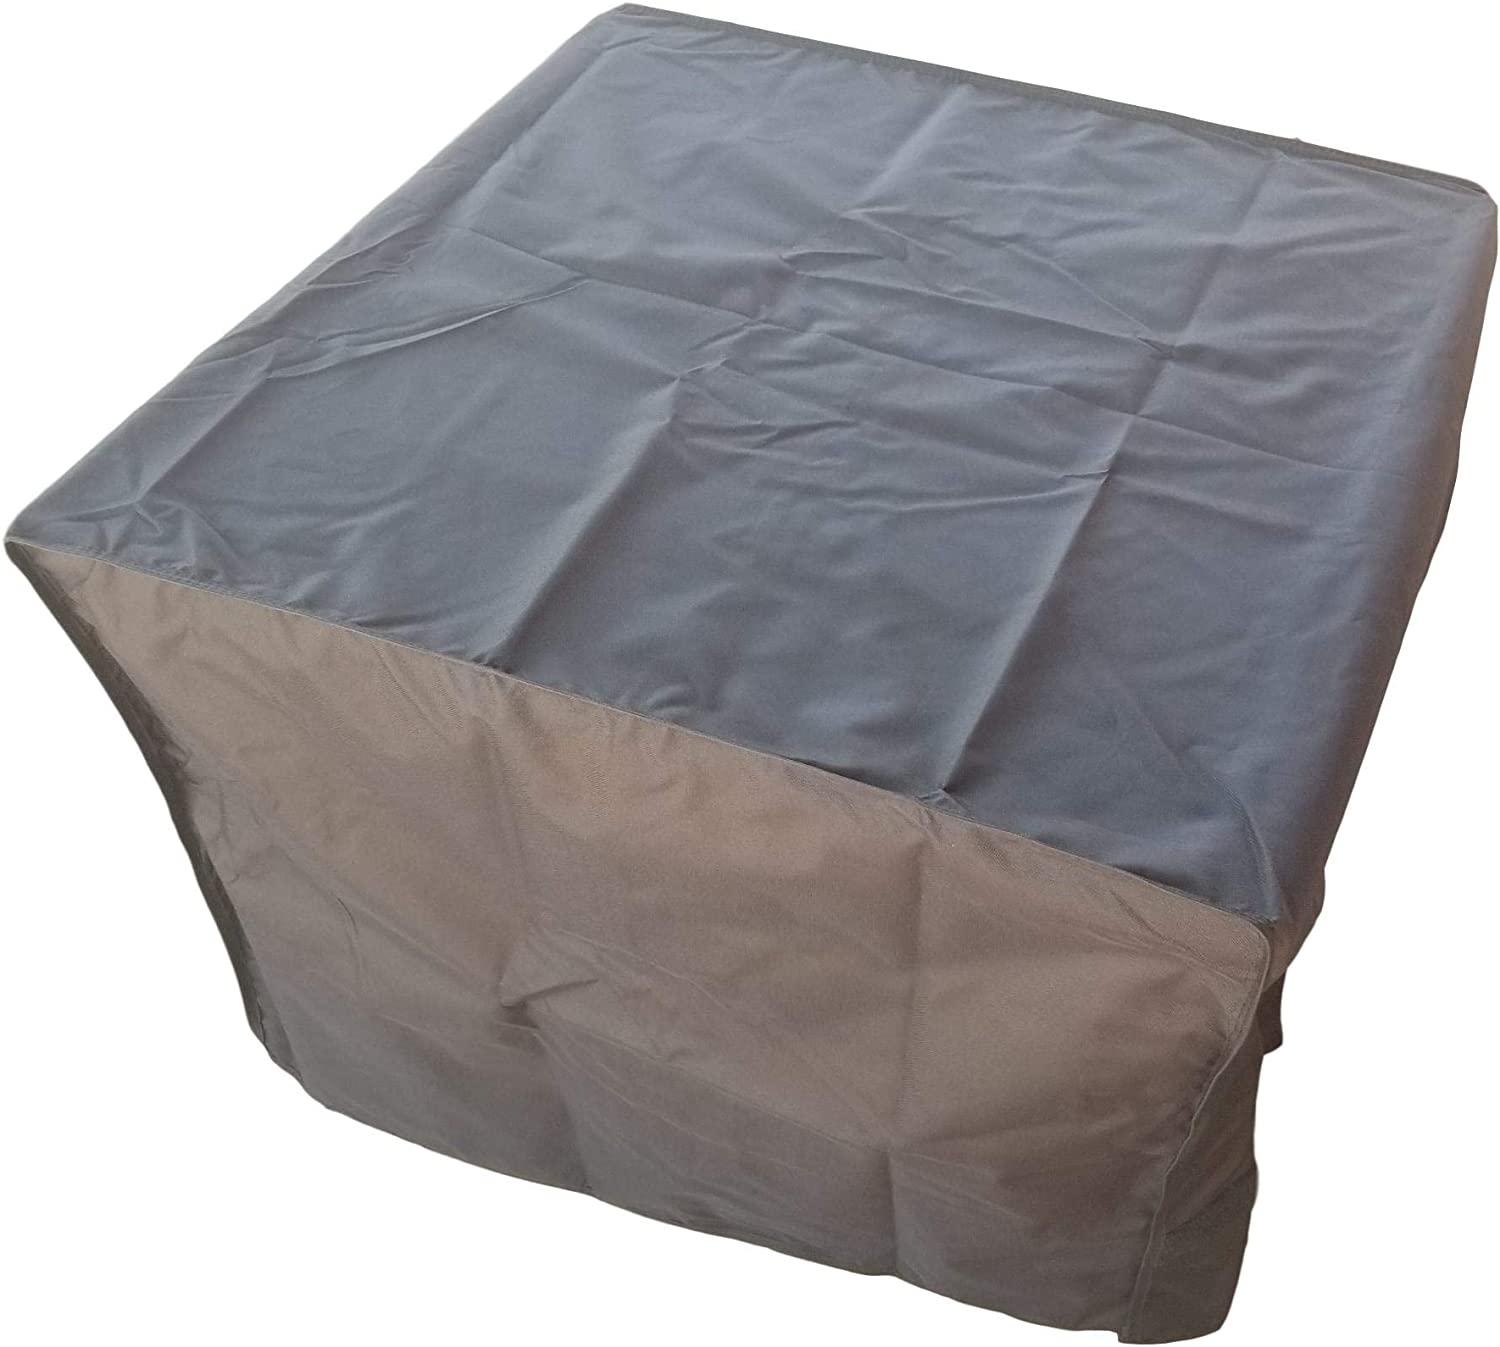 Amazon Com 33 Inch Square Cover For Outdoor Firepits Firetables And Outdoor Tables Garden Outdoor